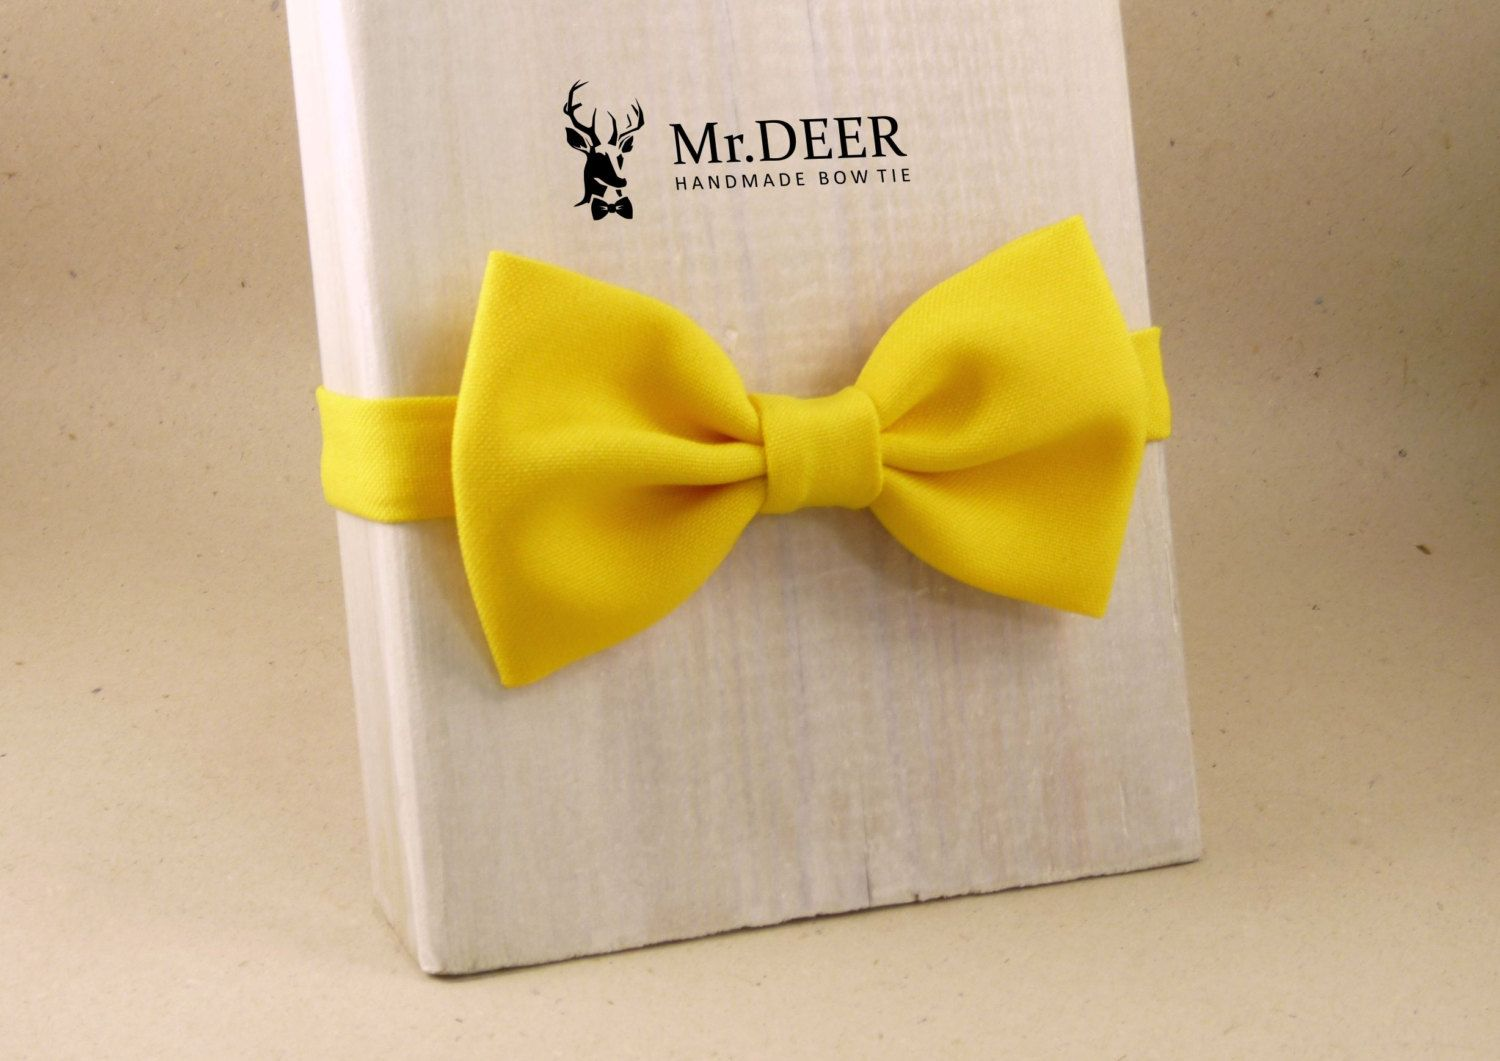 Kids Bright Yellow Bow Tie  - Ready Tied Bow Tie - Children Bow Tie - Bow tie for boy - Toddler bow tie - Mr.DEER by MrDEERbowtie on Etsy